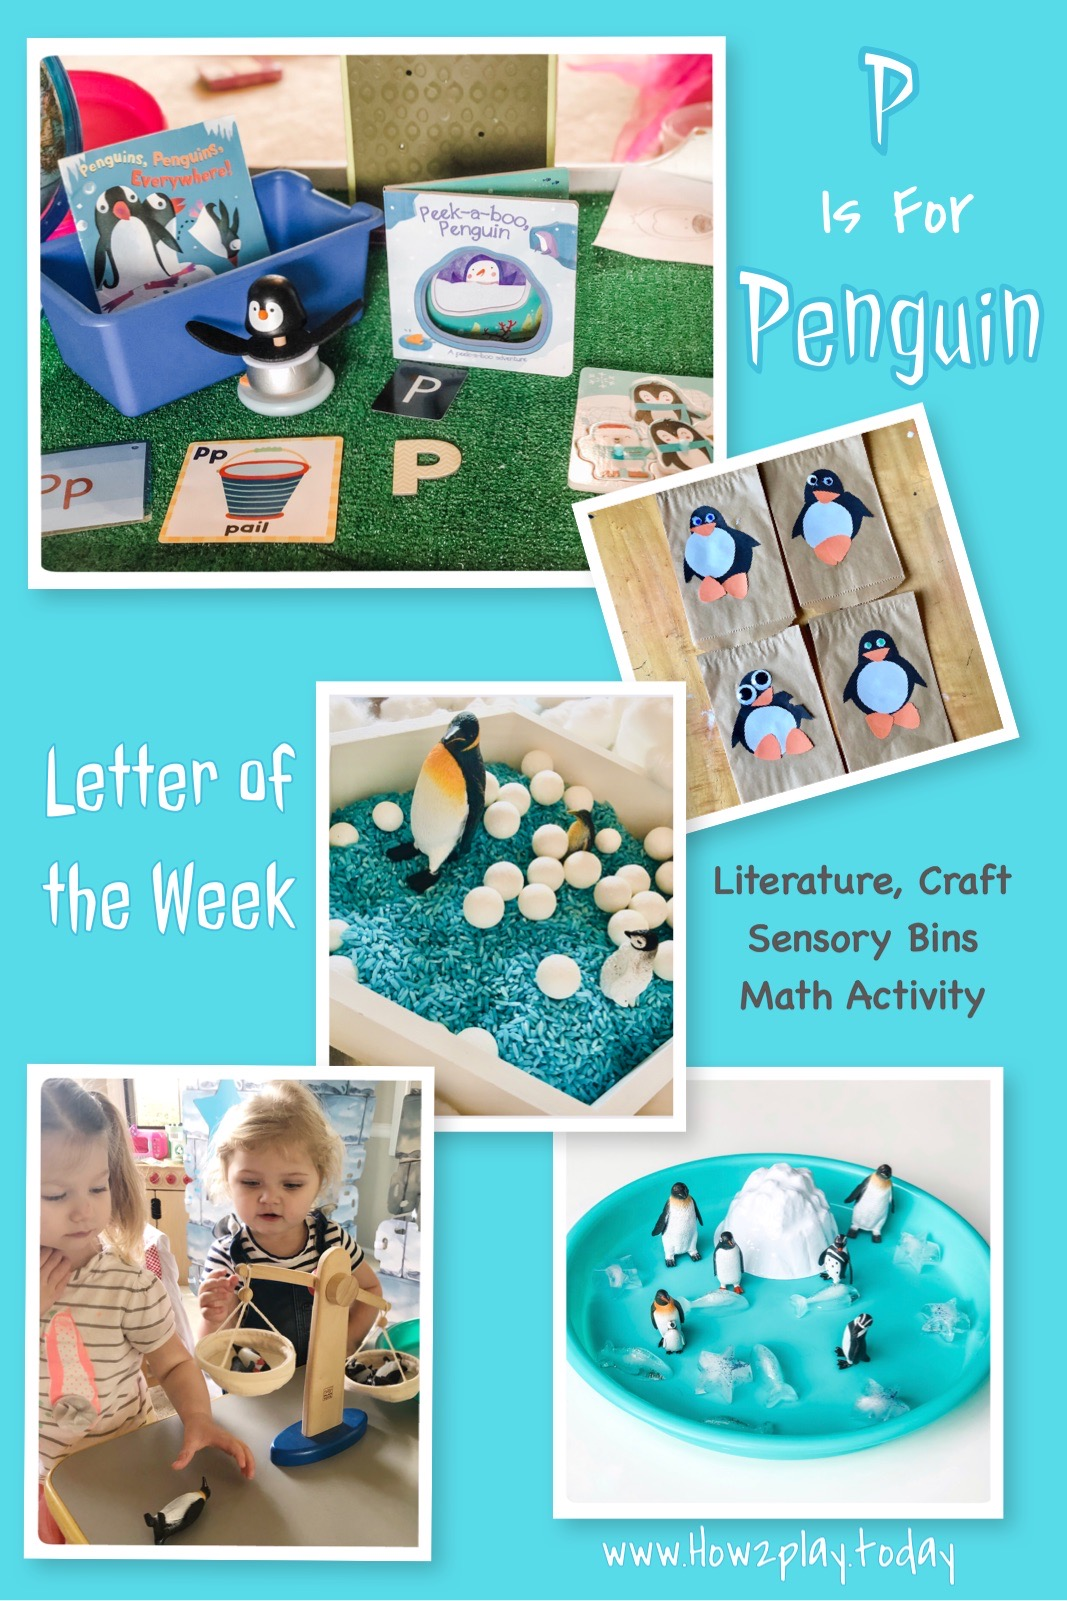 P is for Penguin. Welcome to learning fun and creative ways to teach children letters of the alphabet, including sign language, arts and crafts, sensory bins, sensory trays, and literature.